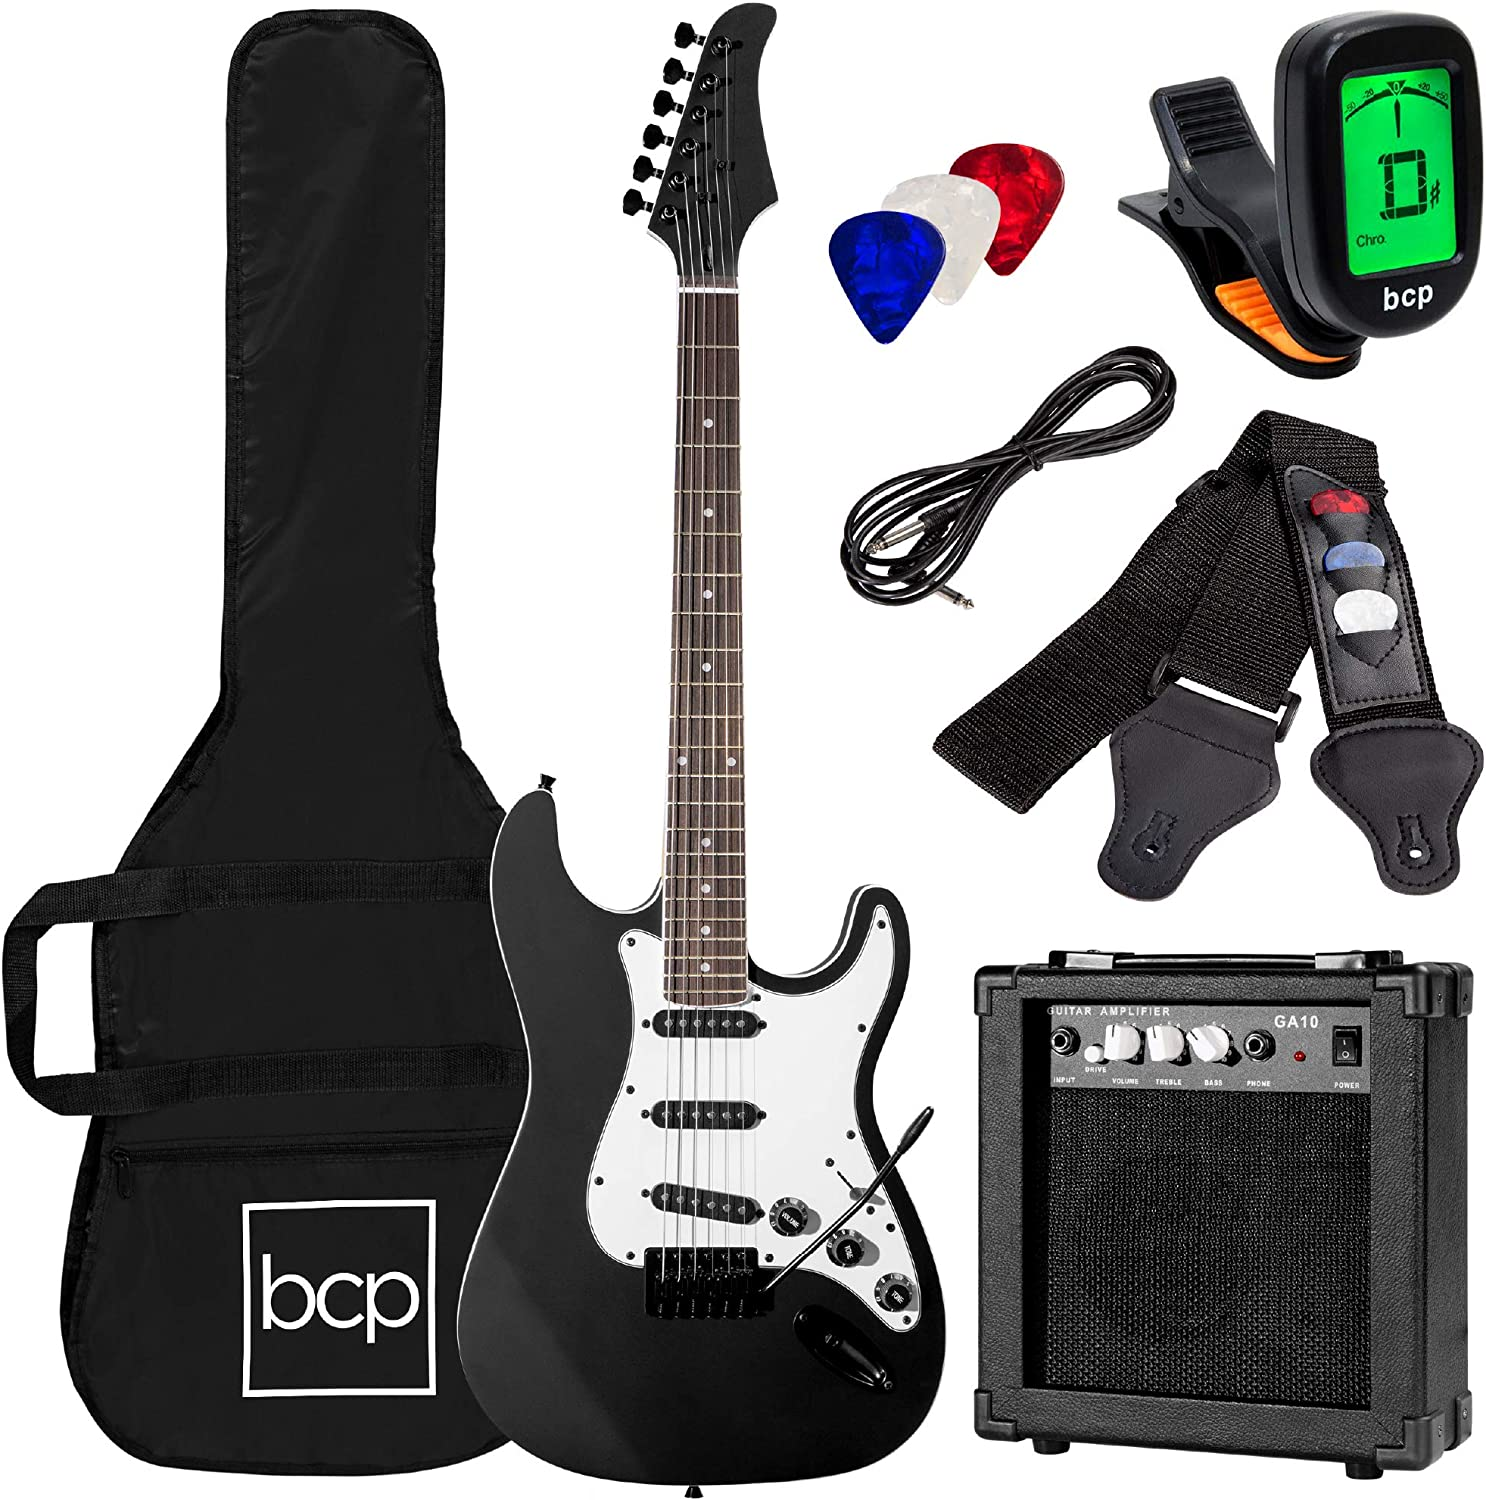 best beginner electric guitar   Full-Size Black Electric Guitar with Amp, Case and Accessories Pack Beginner Starter Package